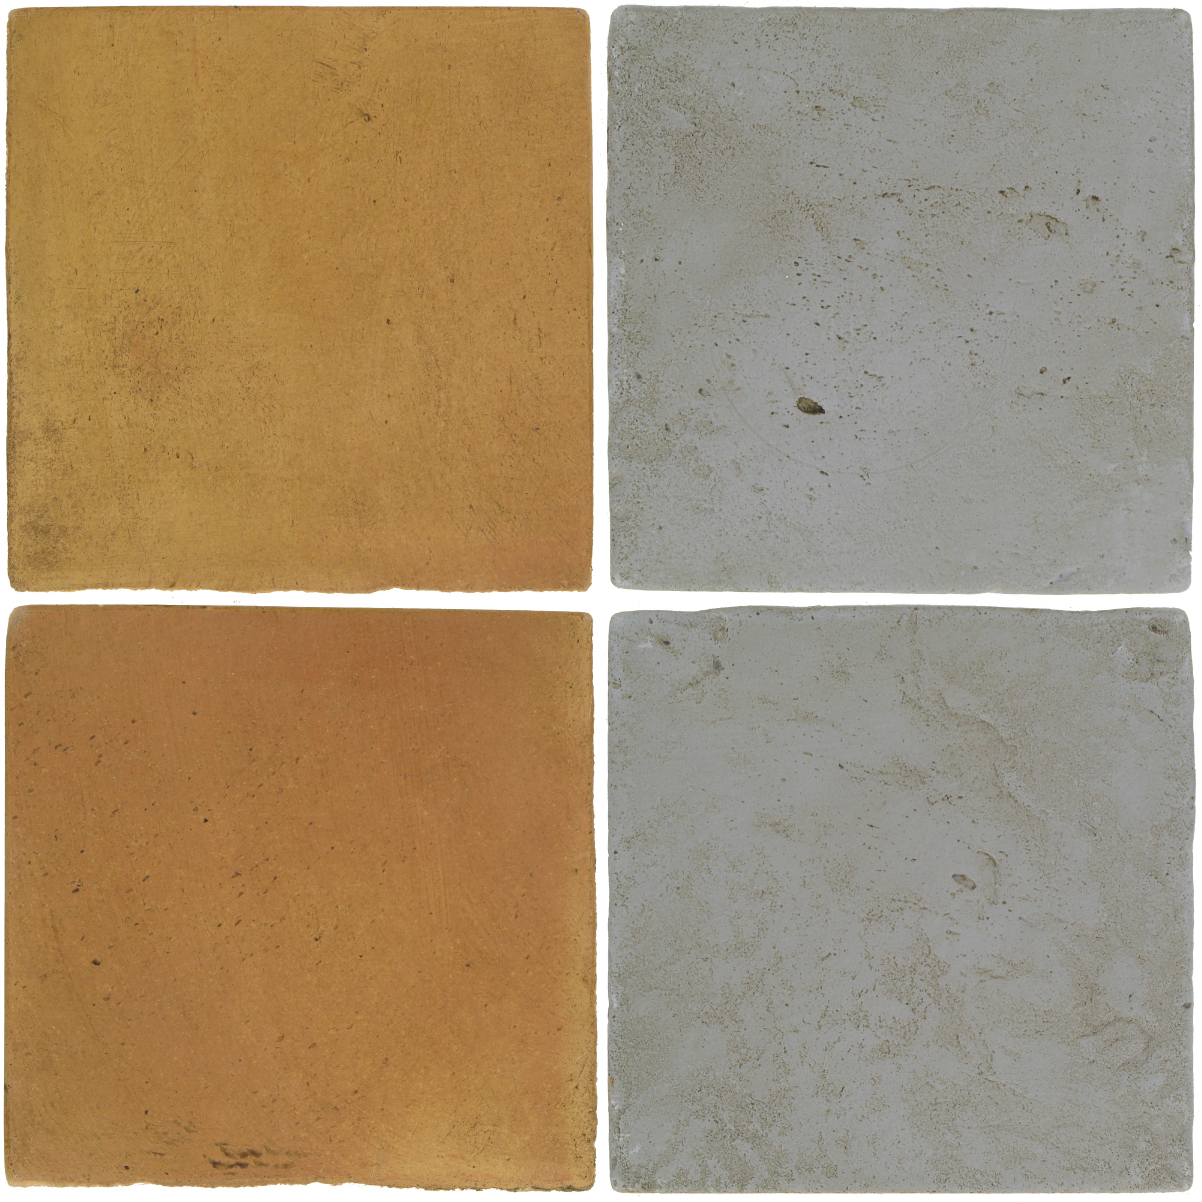 Pedralbes Antique Terracotta  2 Color Combinations  OHS-PSSW Siena Wheat + VTG-PGOG Oyster Grey